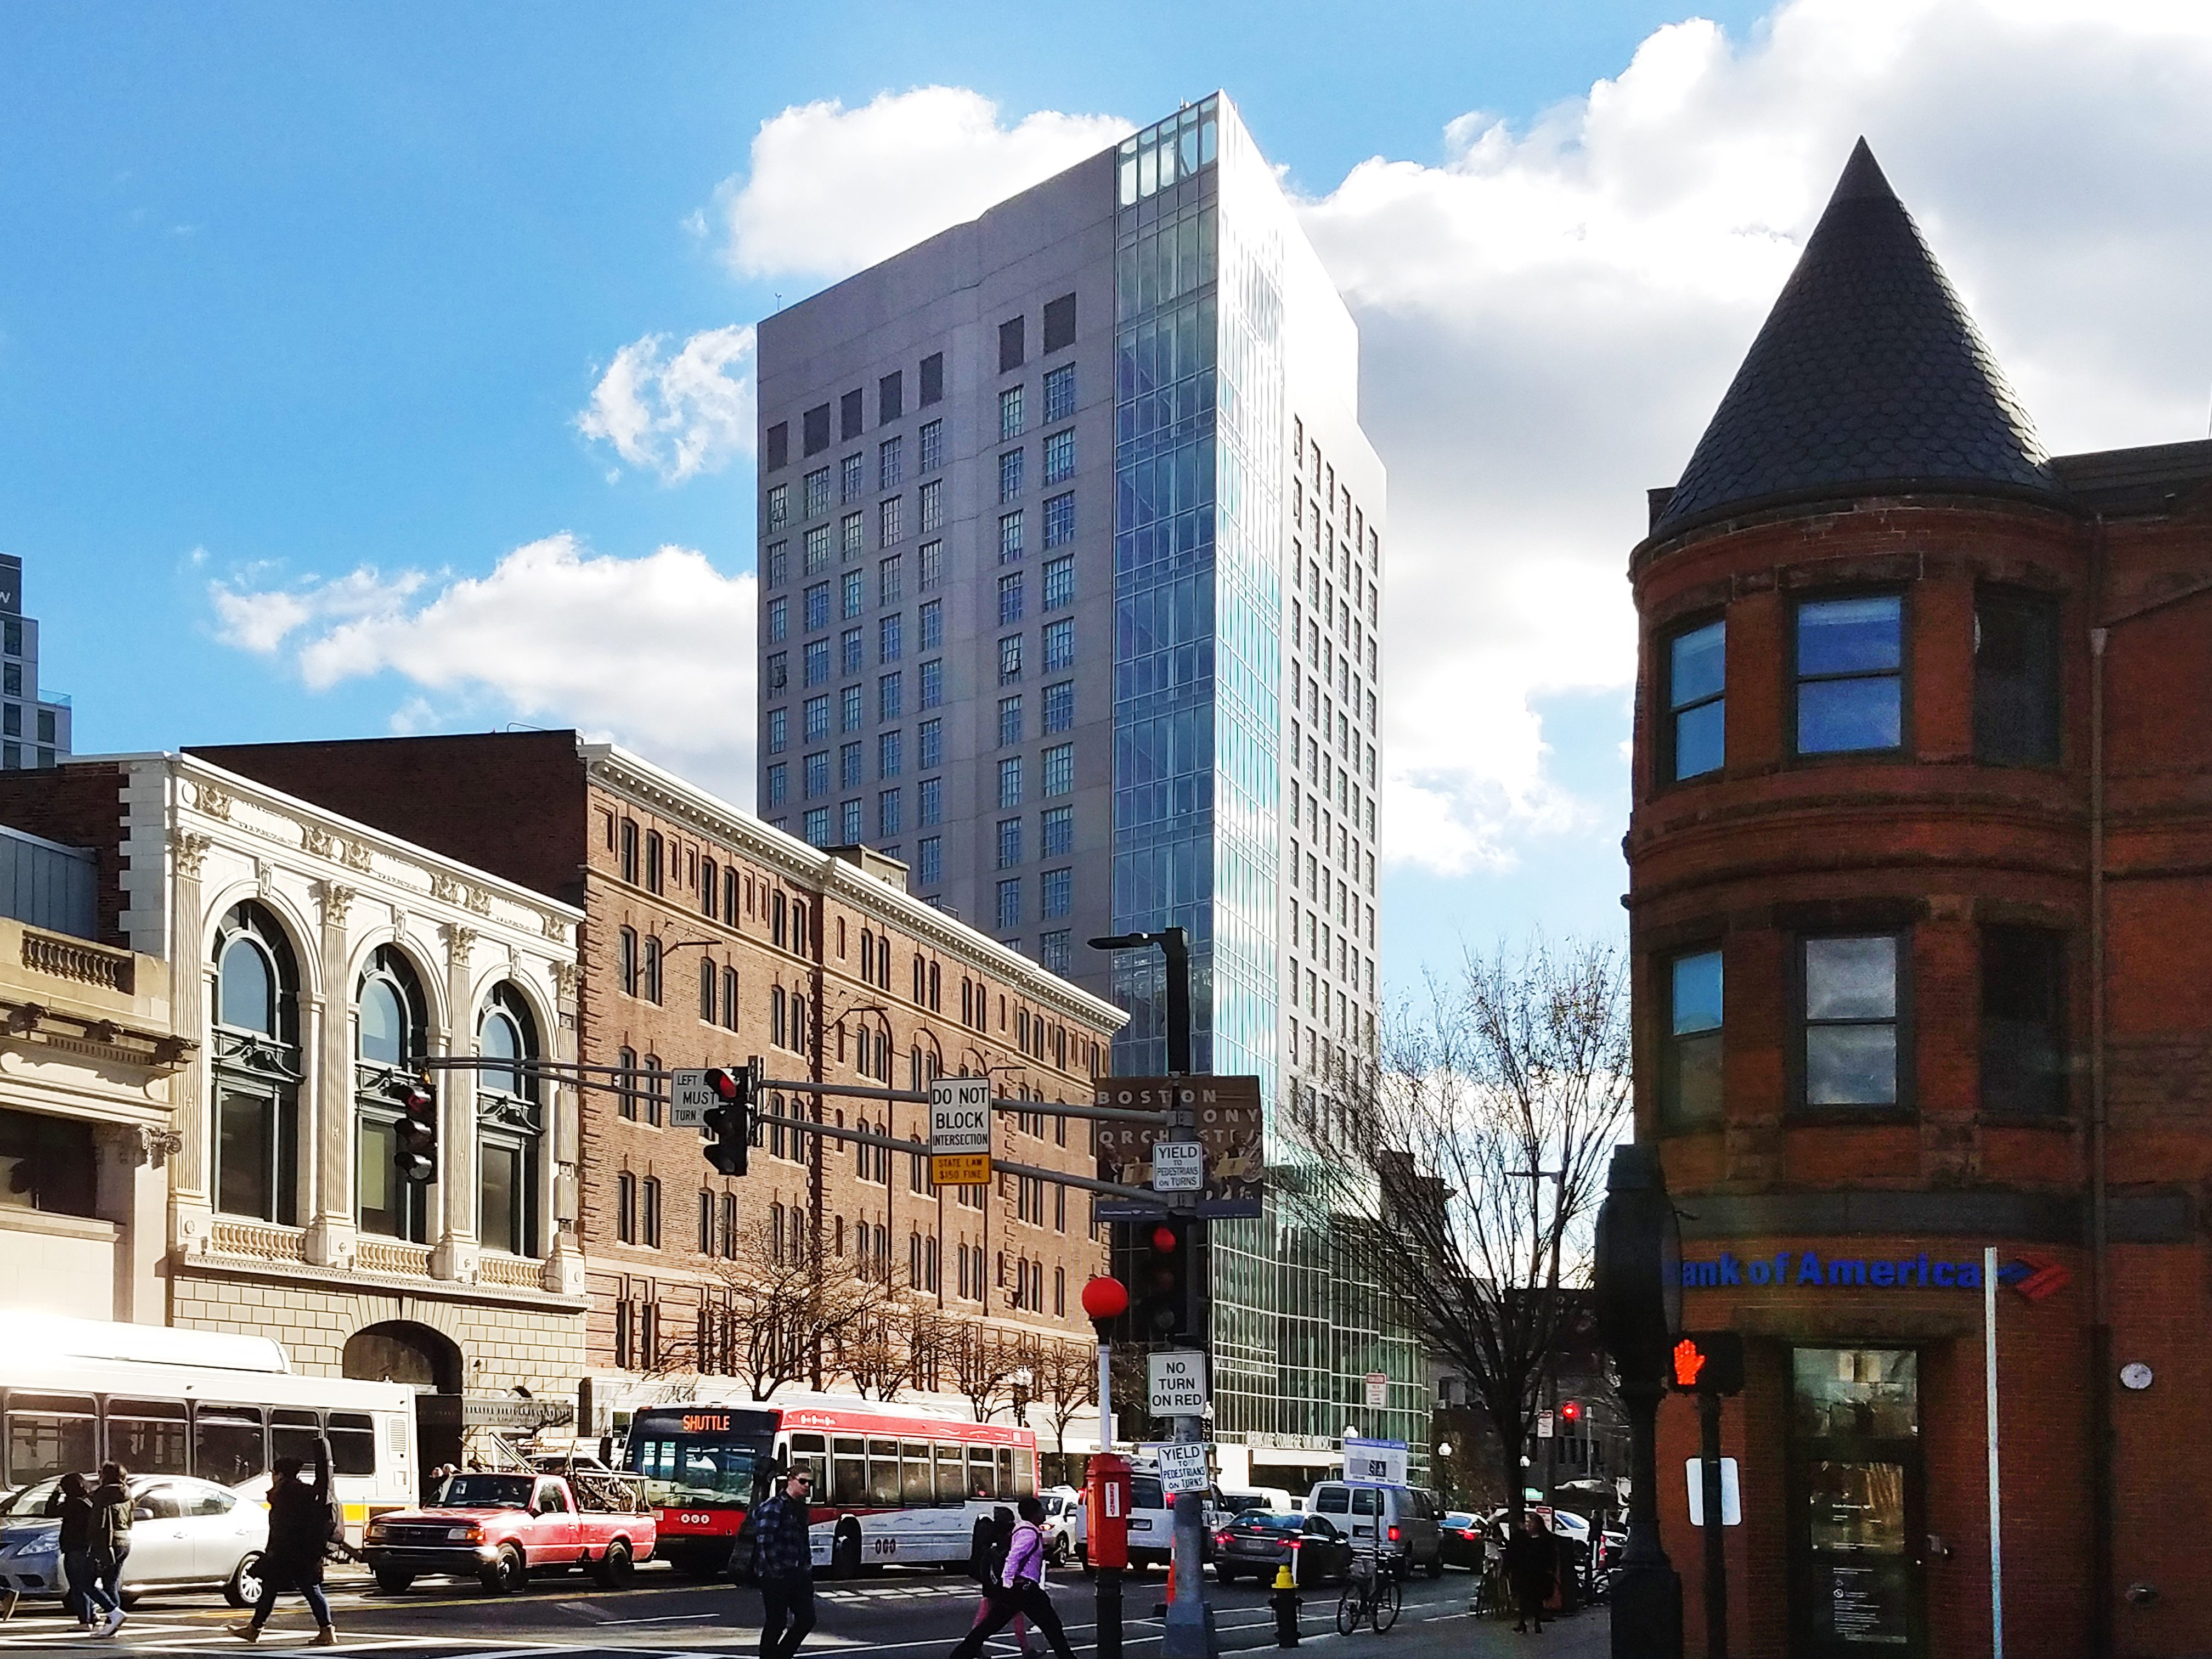 Berklee College / Mixed-Use Tower